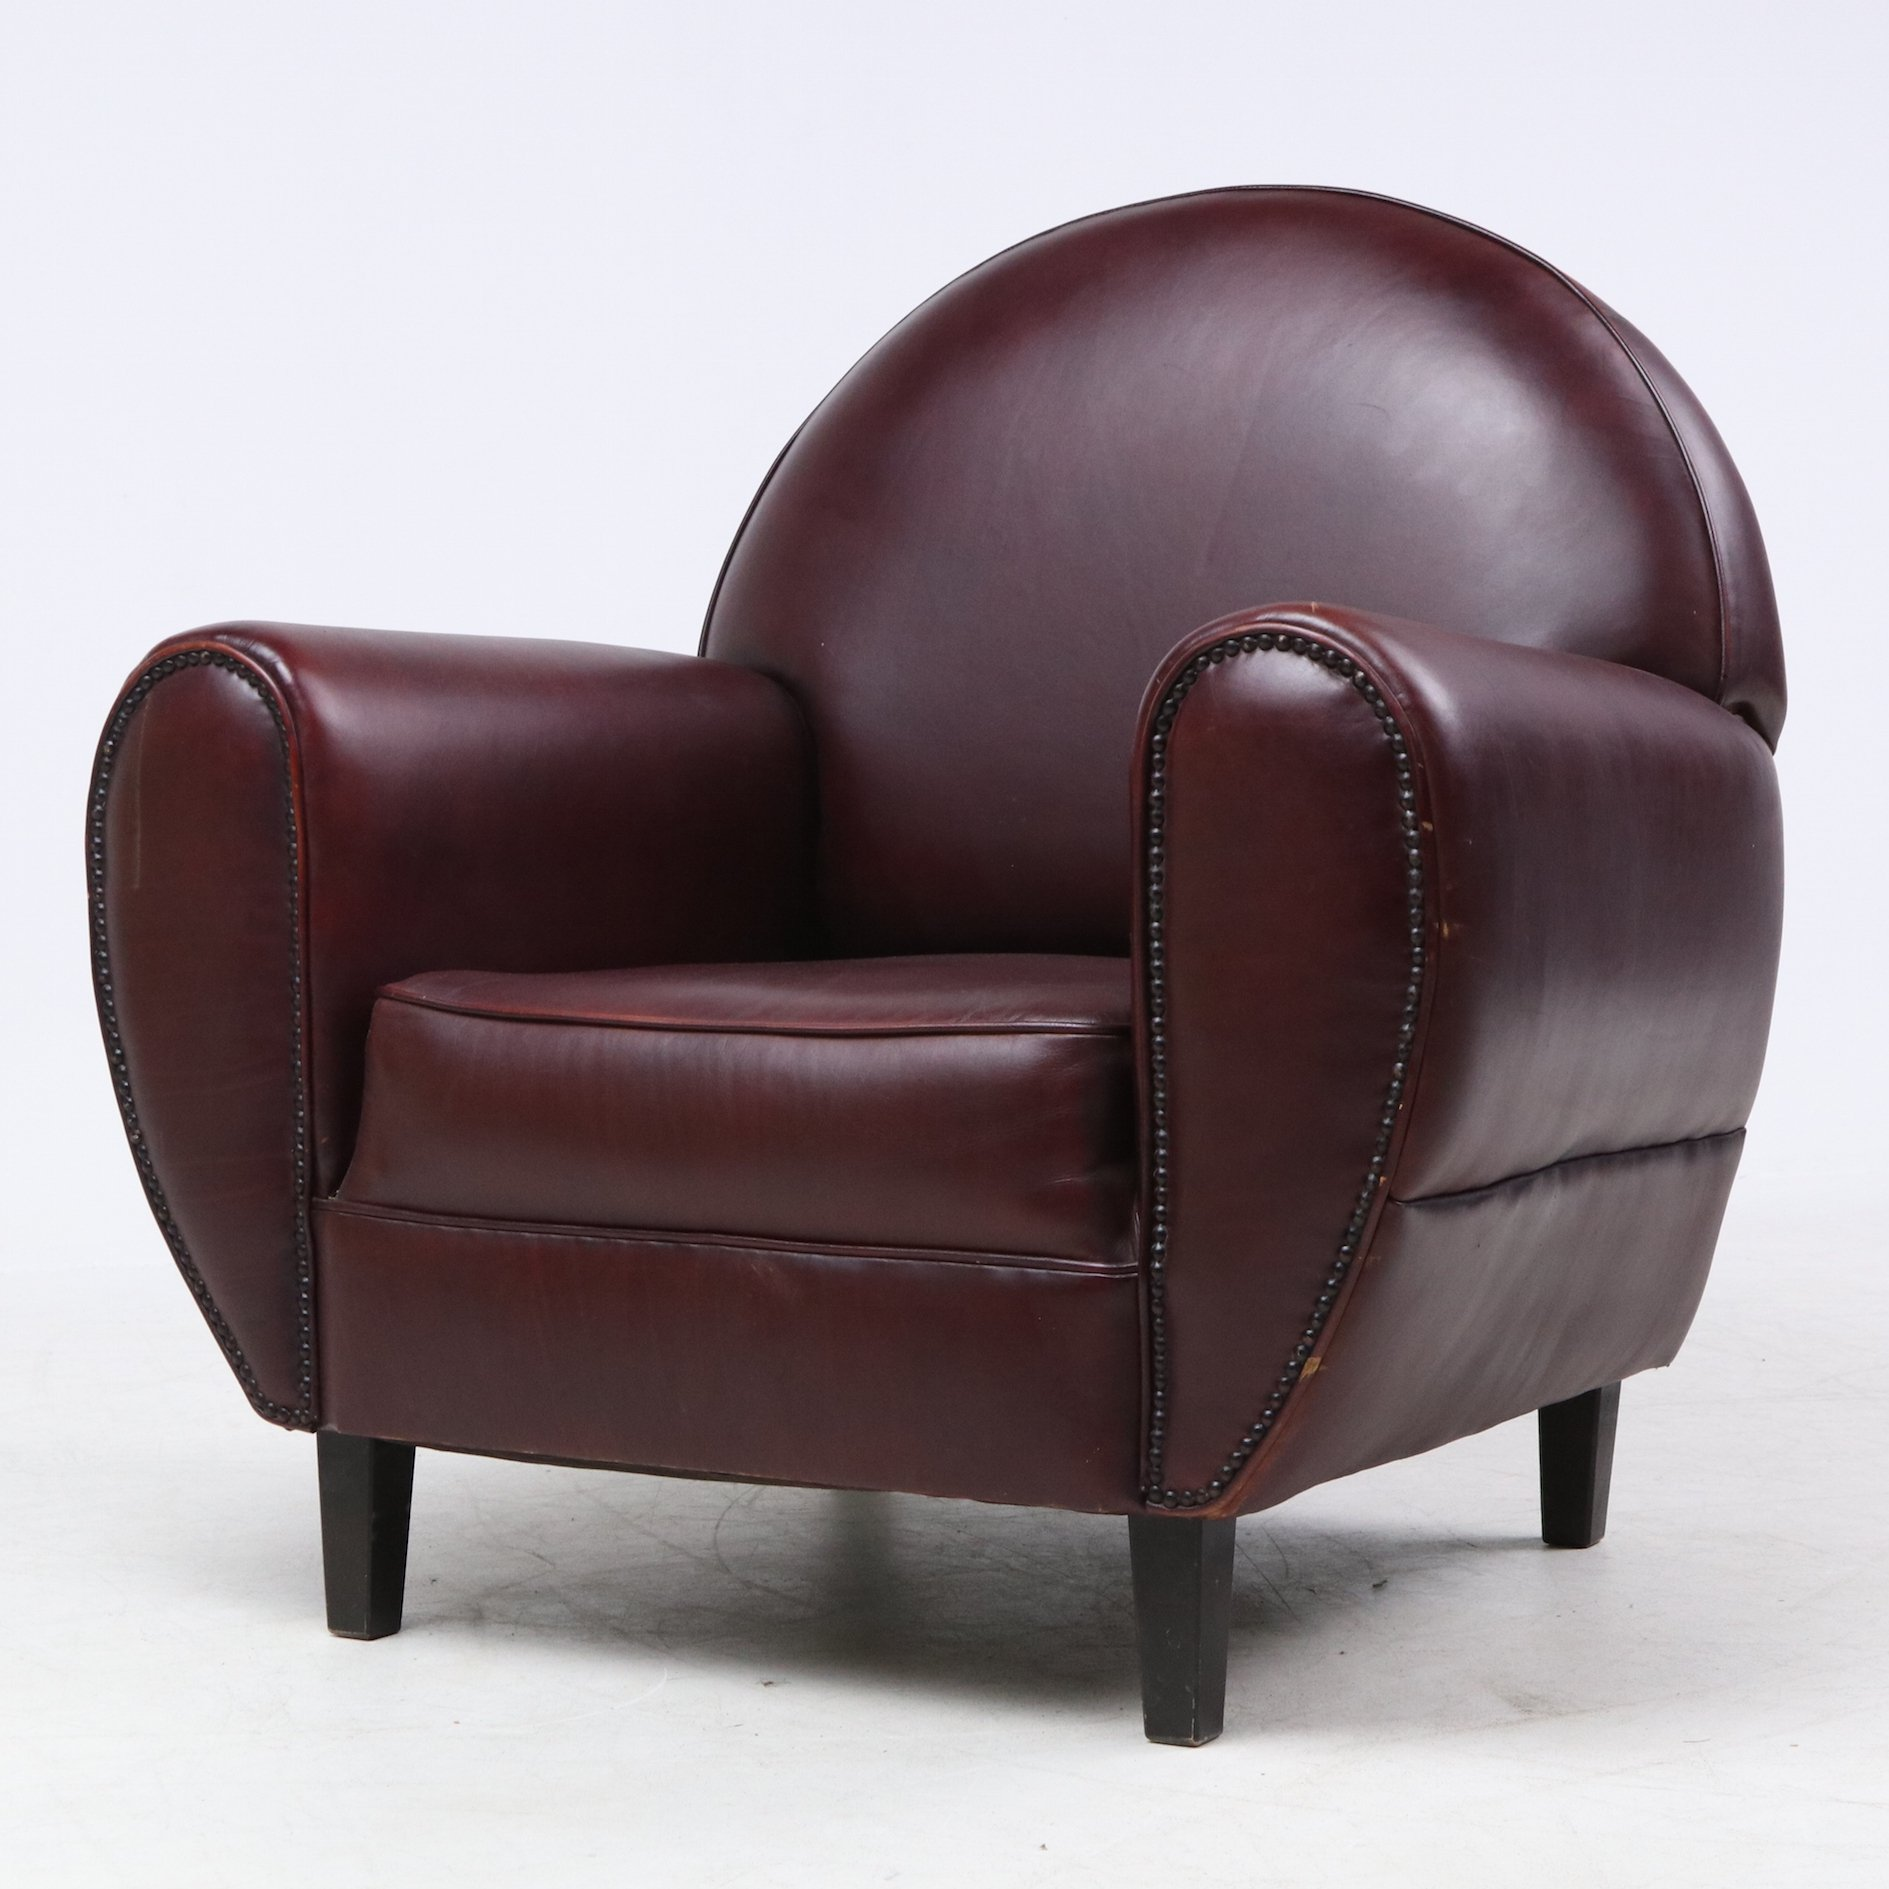 Enjoyable Maroon Leather Art Deco Style Armchair Pdpeps Interior Chair Design Pdpepsorg